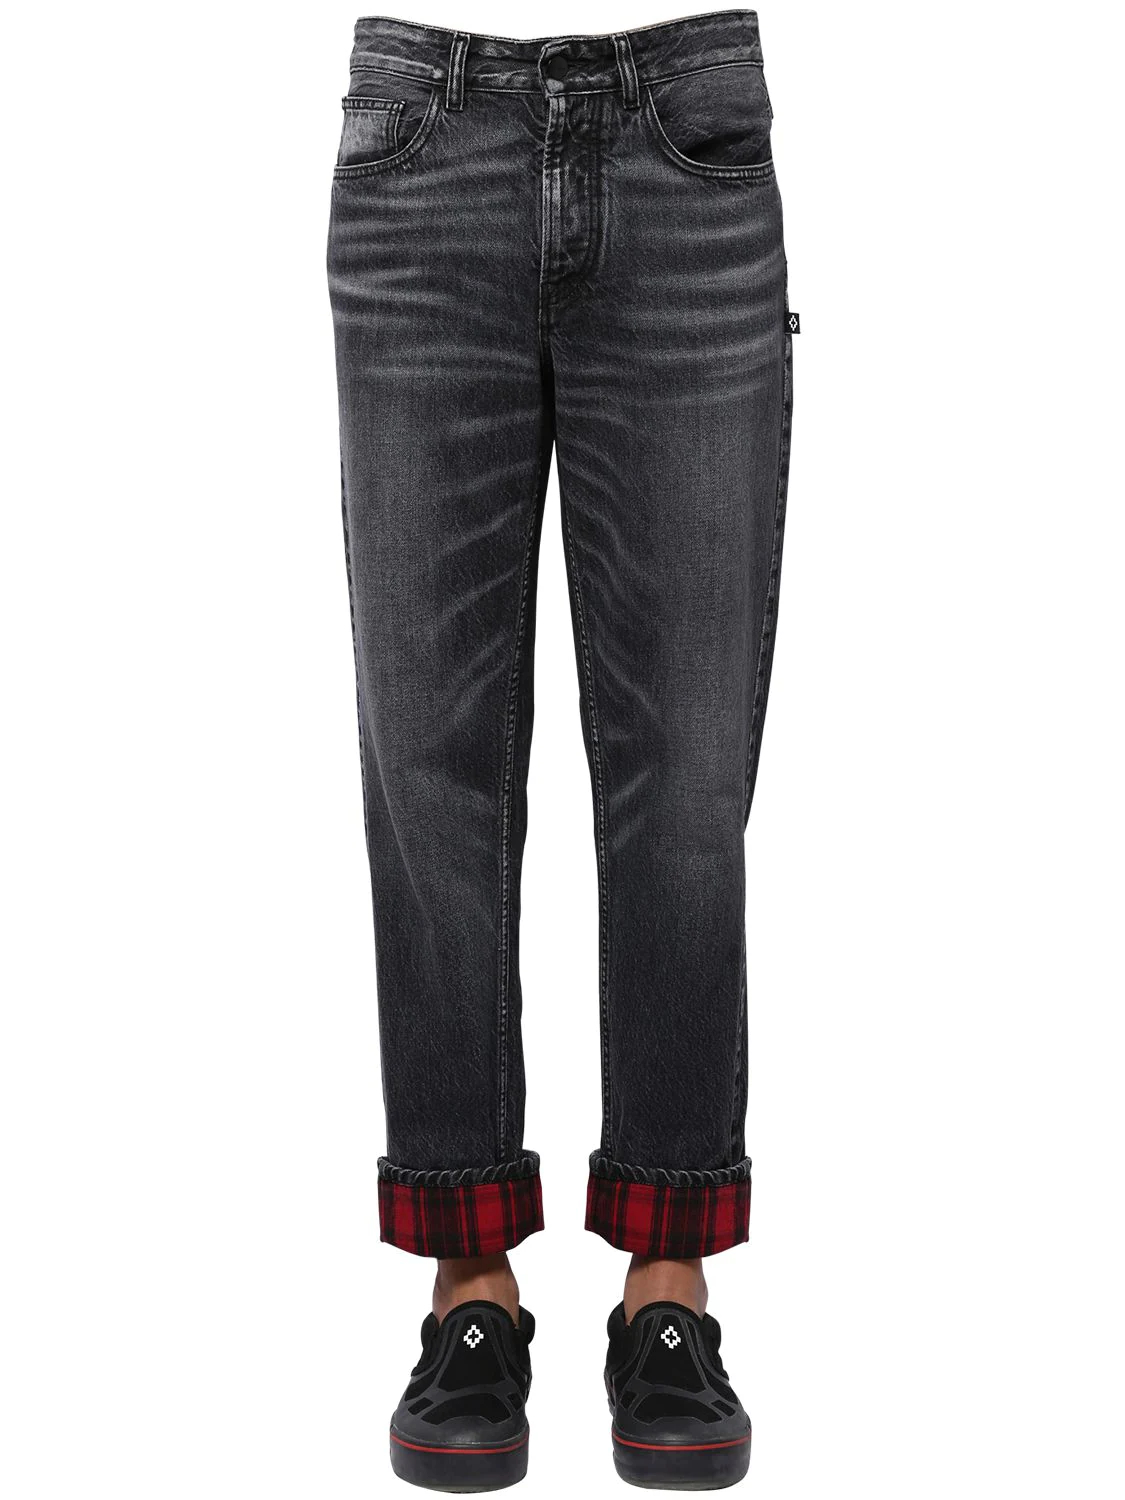 Marcelo Burlon | Cotton Denim Carrot Jeans W/ Check | Clouty